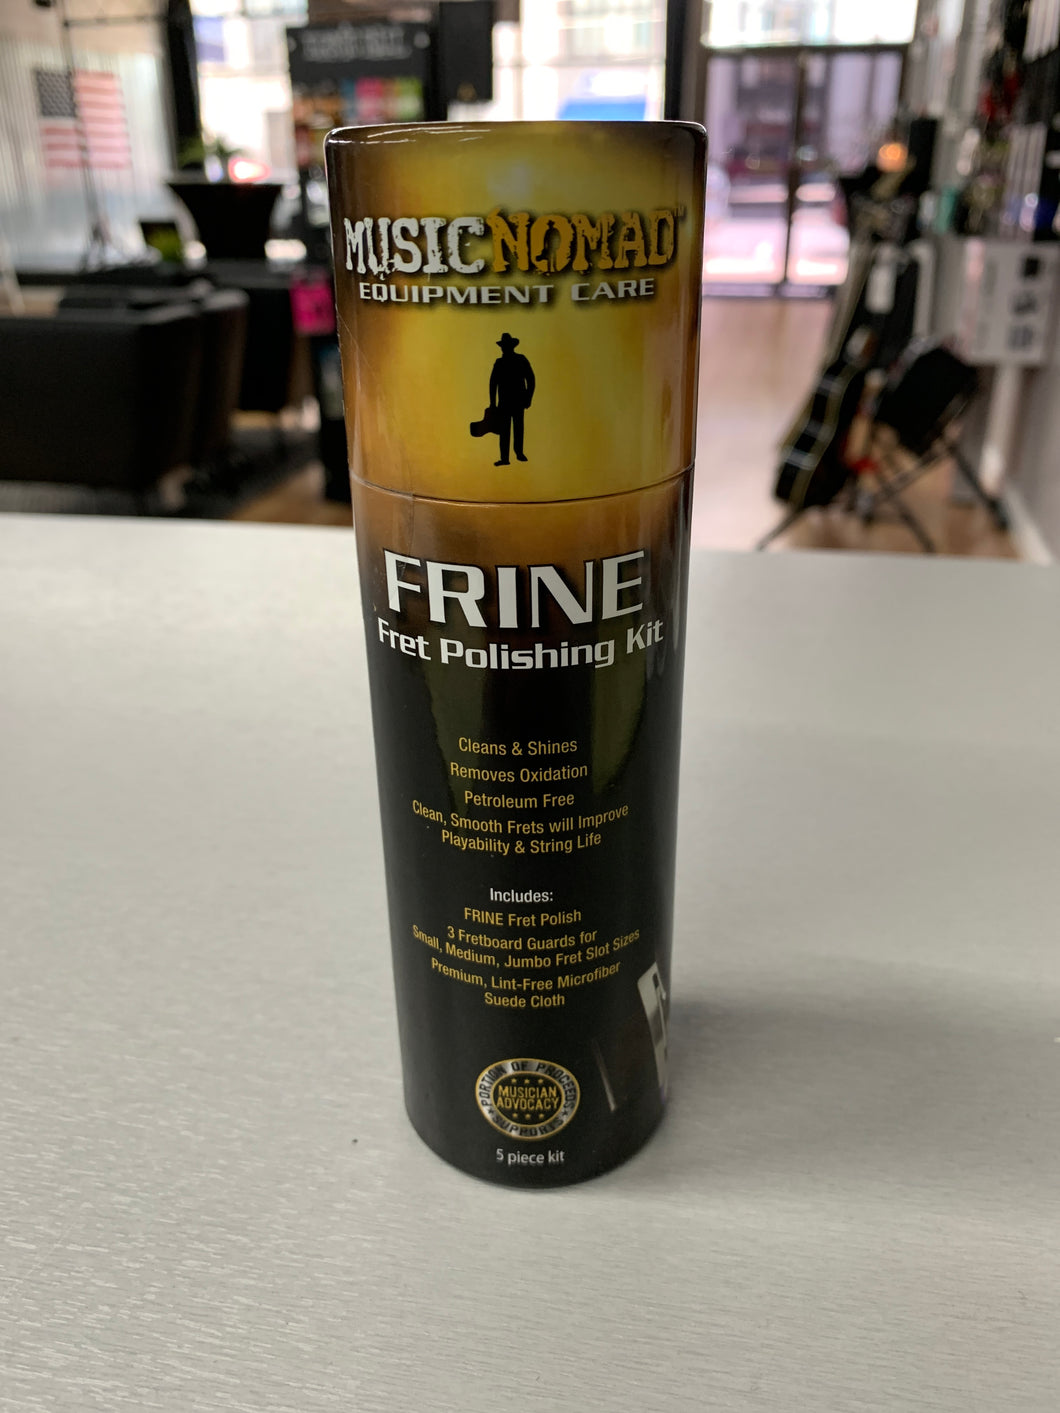 FRINE Fret polish kit